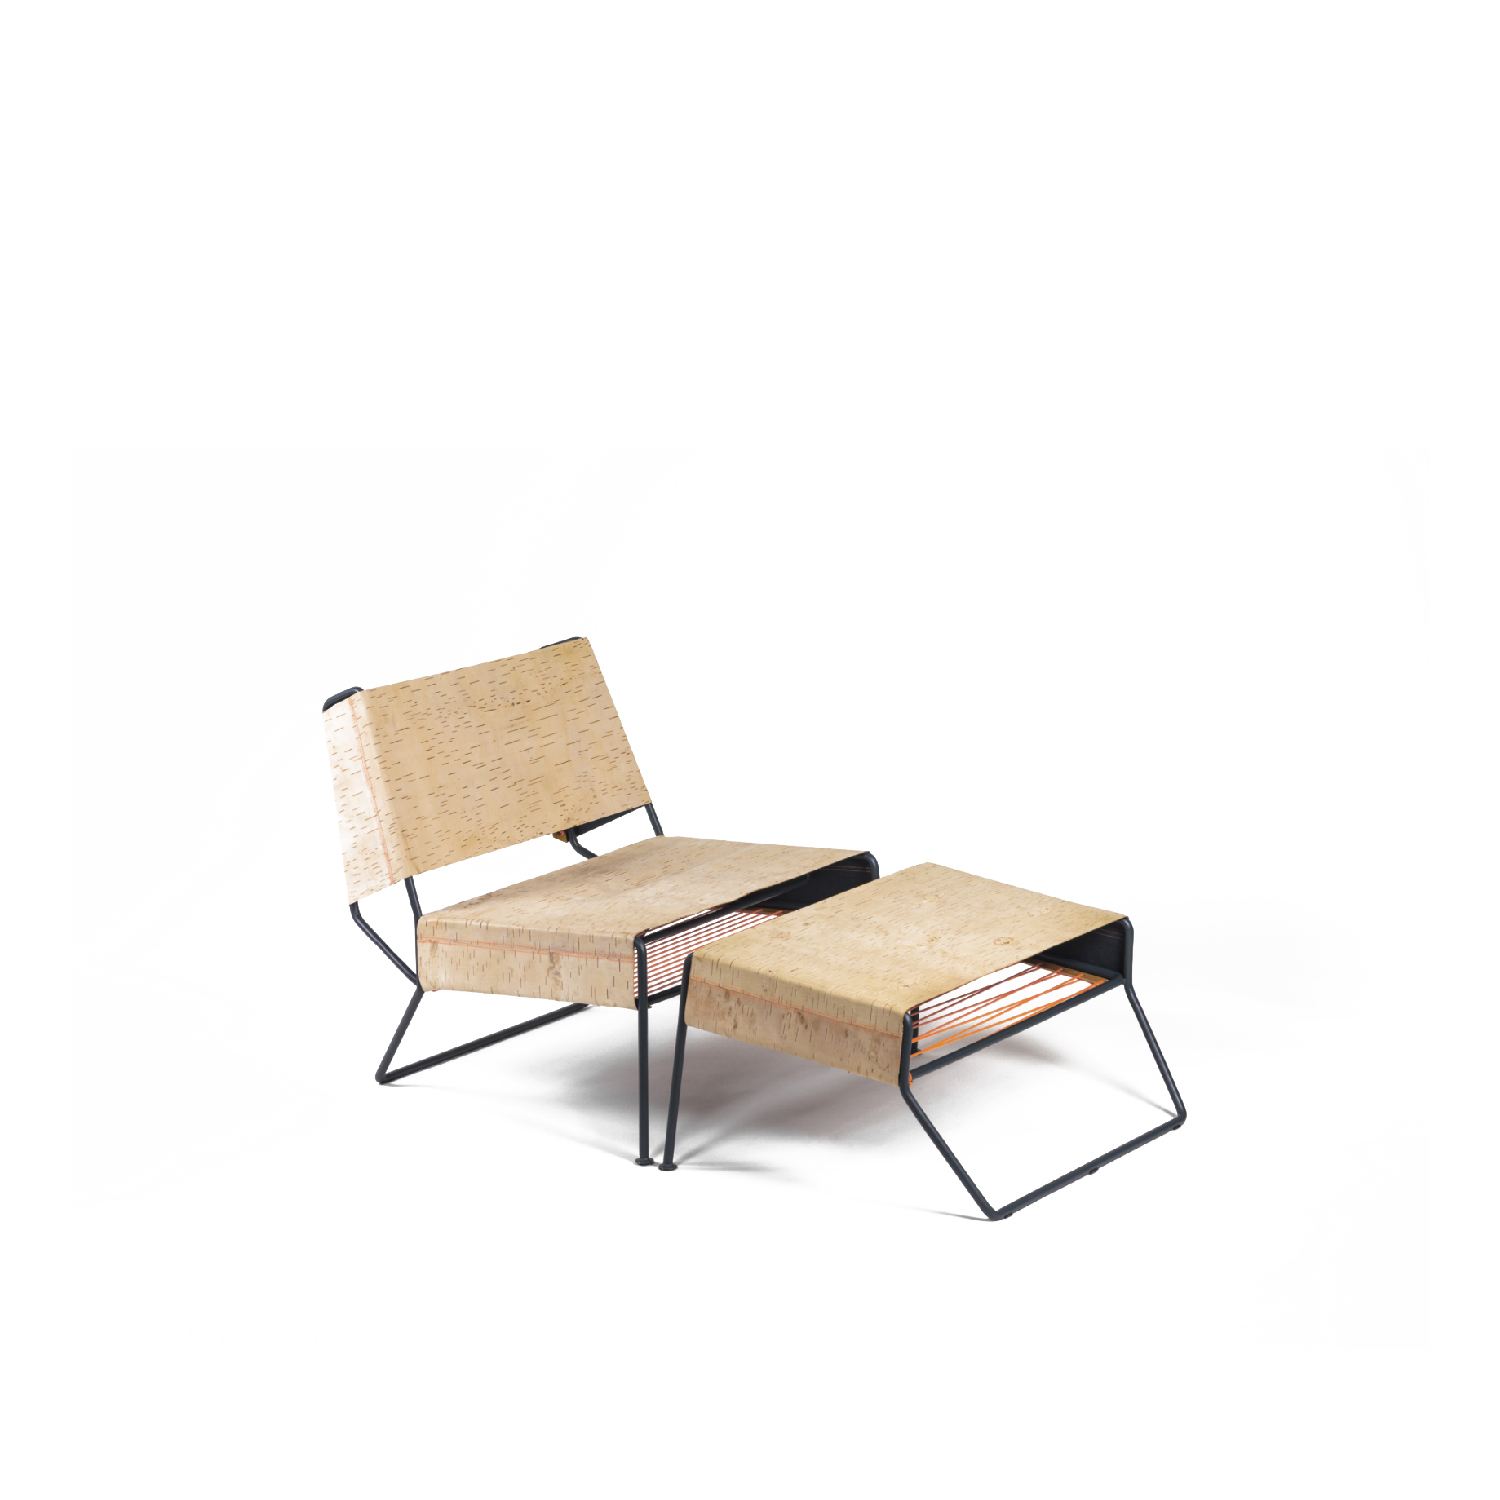 Sibirjak Lounge Chair with Ottoman - Sibirjak is a contemporary lounge chair made from birch bark. This fascinating natural material is not only flexible, soft, waterrepellent, and antibacterial, but also breathable, durable, and strong. Despite these unique characteristics, as a material for everyday objects, it is gradually being forgotten. In response, Sibirjak answers the question of how to revive an ancient tradition while reinterpreting a conventional handicraft with contemporary techniques.  The chair and ottoman combination emphasizes the material's aesthetics, combining traditional skills with modern processing. The horizontal alignment of the bark underlines the leatherlike properties of the material, is welcoming, and offers a wide comfortable seat. The textile details and reduced geometric frame form a strong contrast to the natural birch bark.  The use of birch bark in Sibirjak is in strong contrast to the material's usual folkloric associations, while at the same time reinvigorating traditional handicraft by demonstrating new design possibilities in a contemporary context.  Chair 70 x 45 x 36/70 cm Ottoman 70 x 40 x 36 cm Birch bark, powder-coated steel, thread  Delivery time: made to order | Matter of Stuff